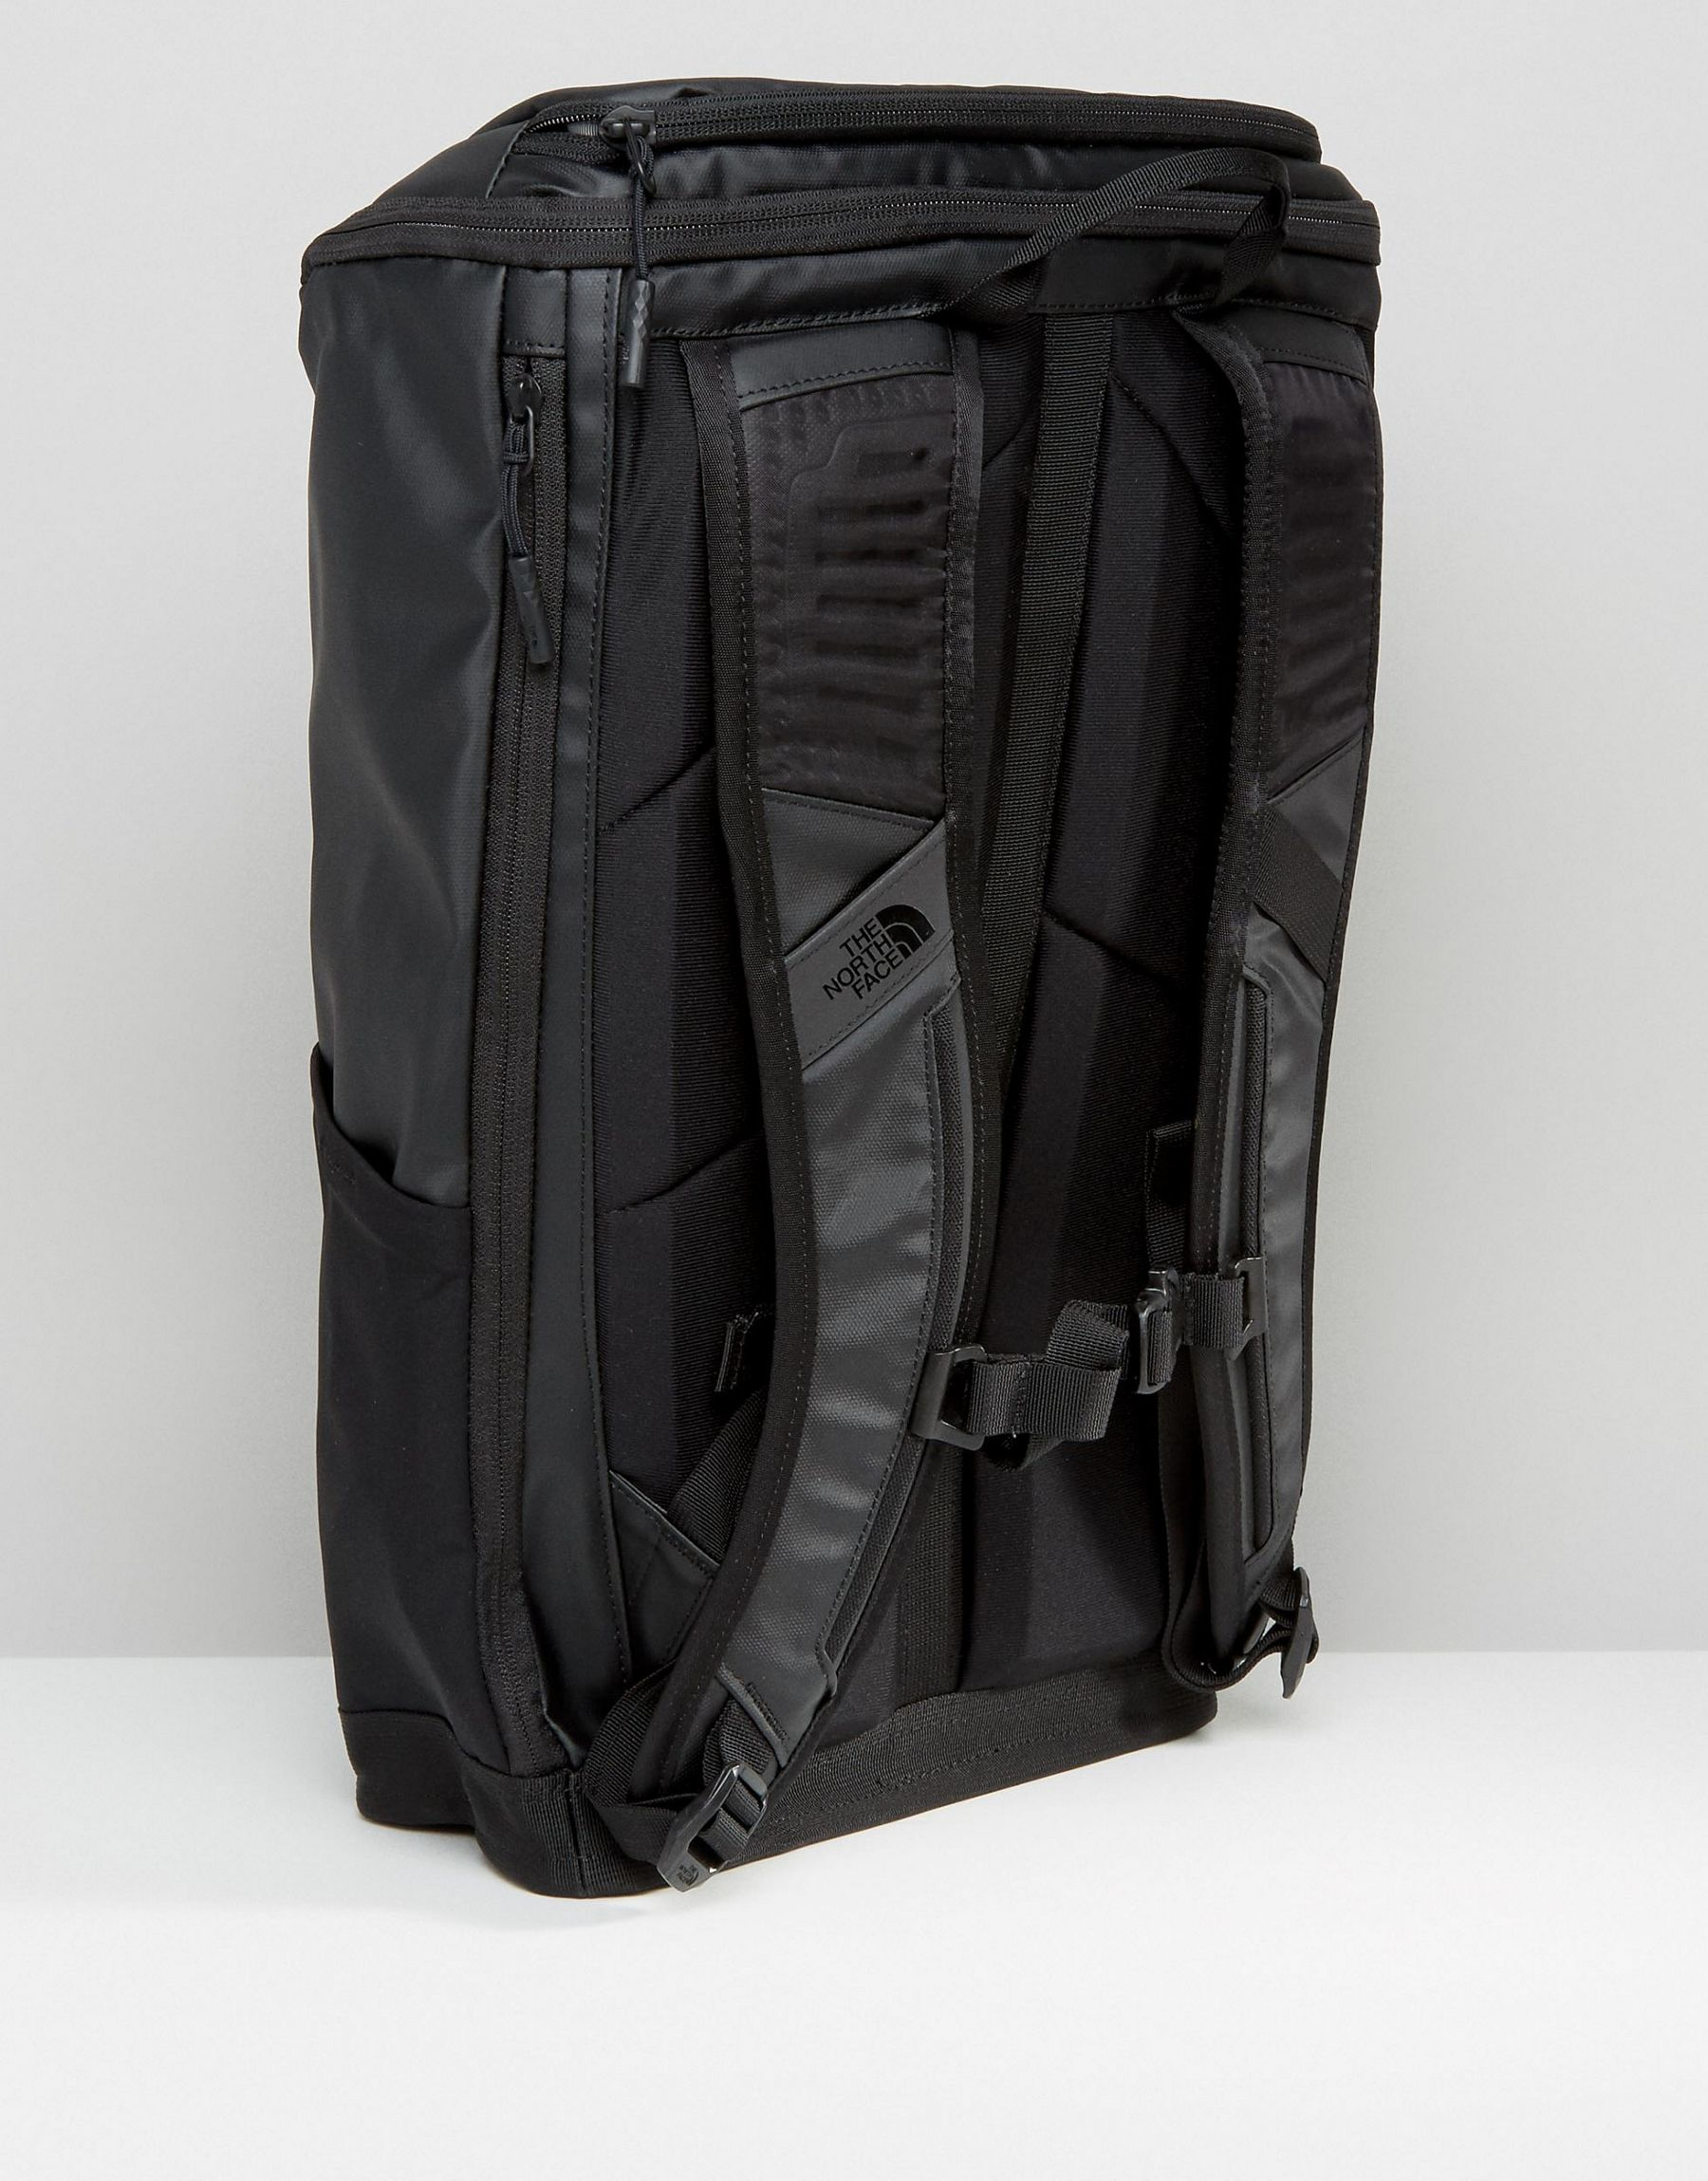 6be6f8541d80 Lyst - The North Face Base Camp Kaban Backpack In Black in Black for Men